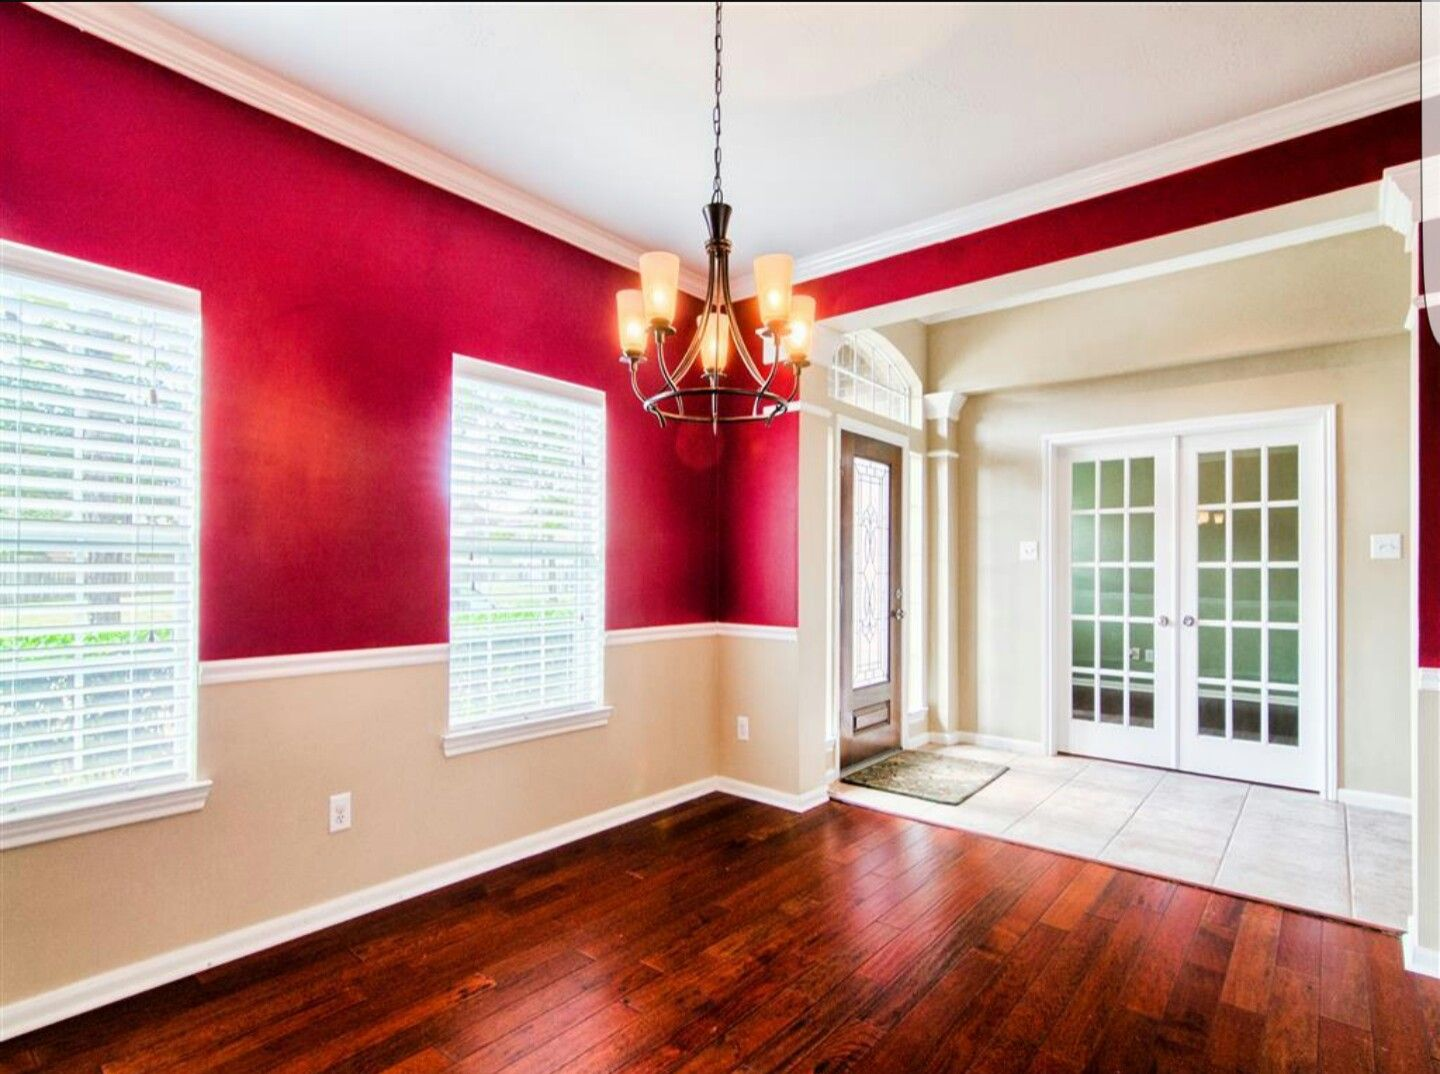 Pin On Painting Ideas #red #wall #living #room #ideas